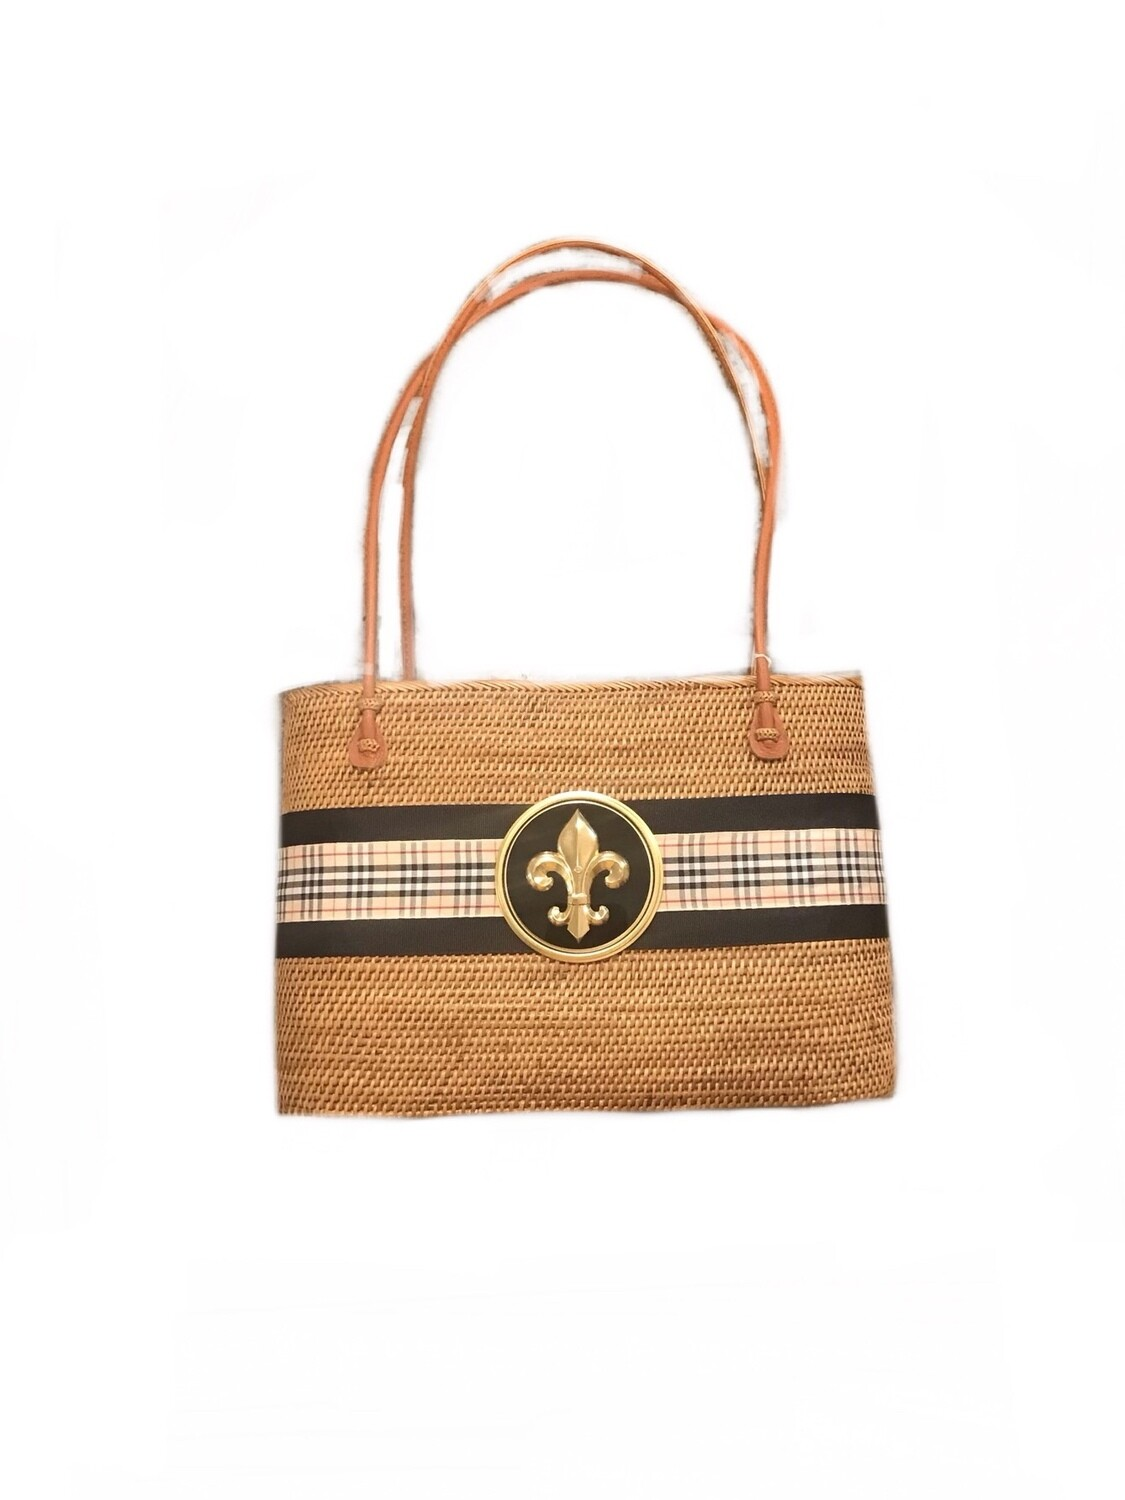 Straw bag burberry ribbon